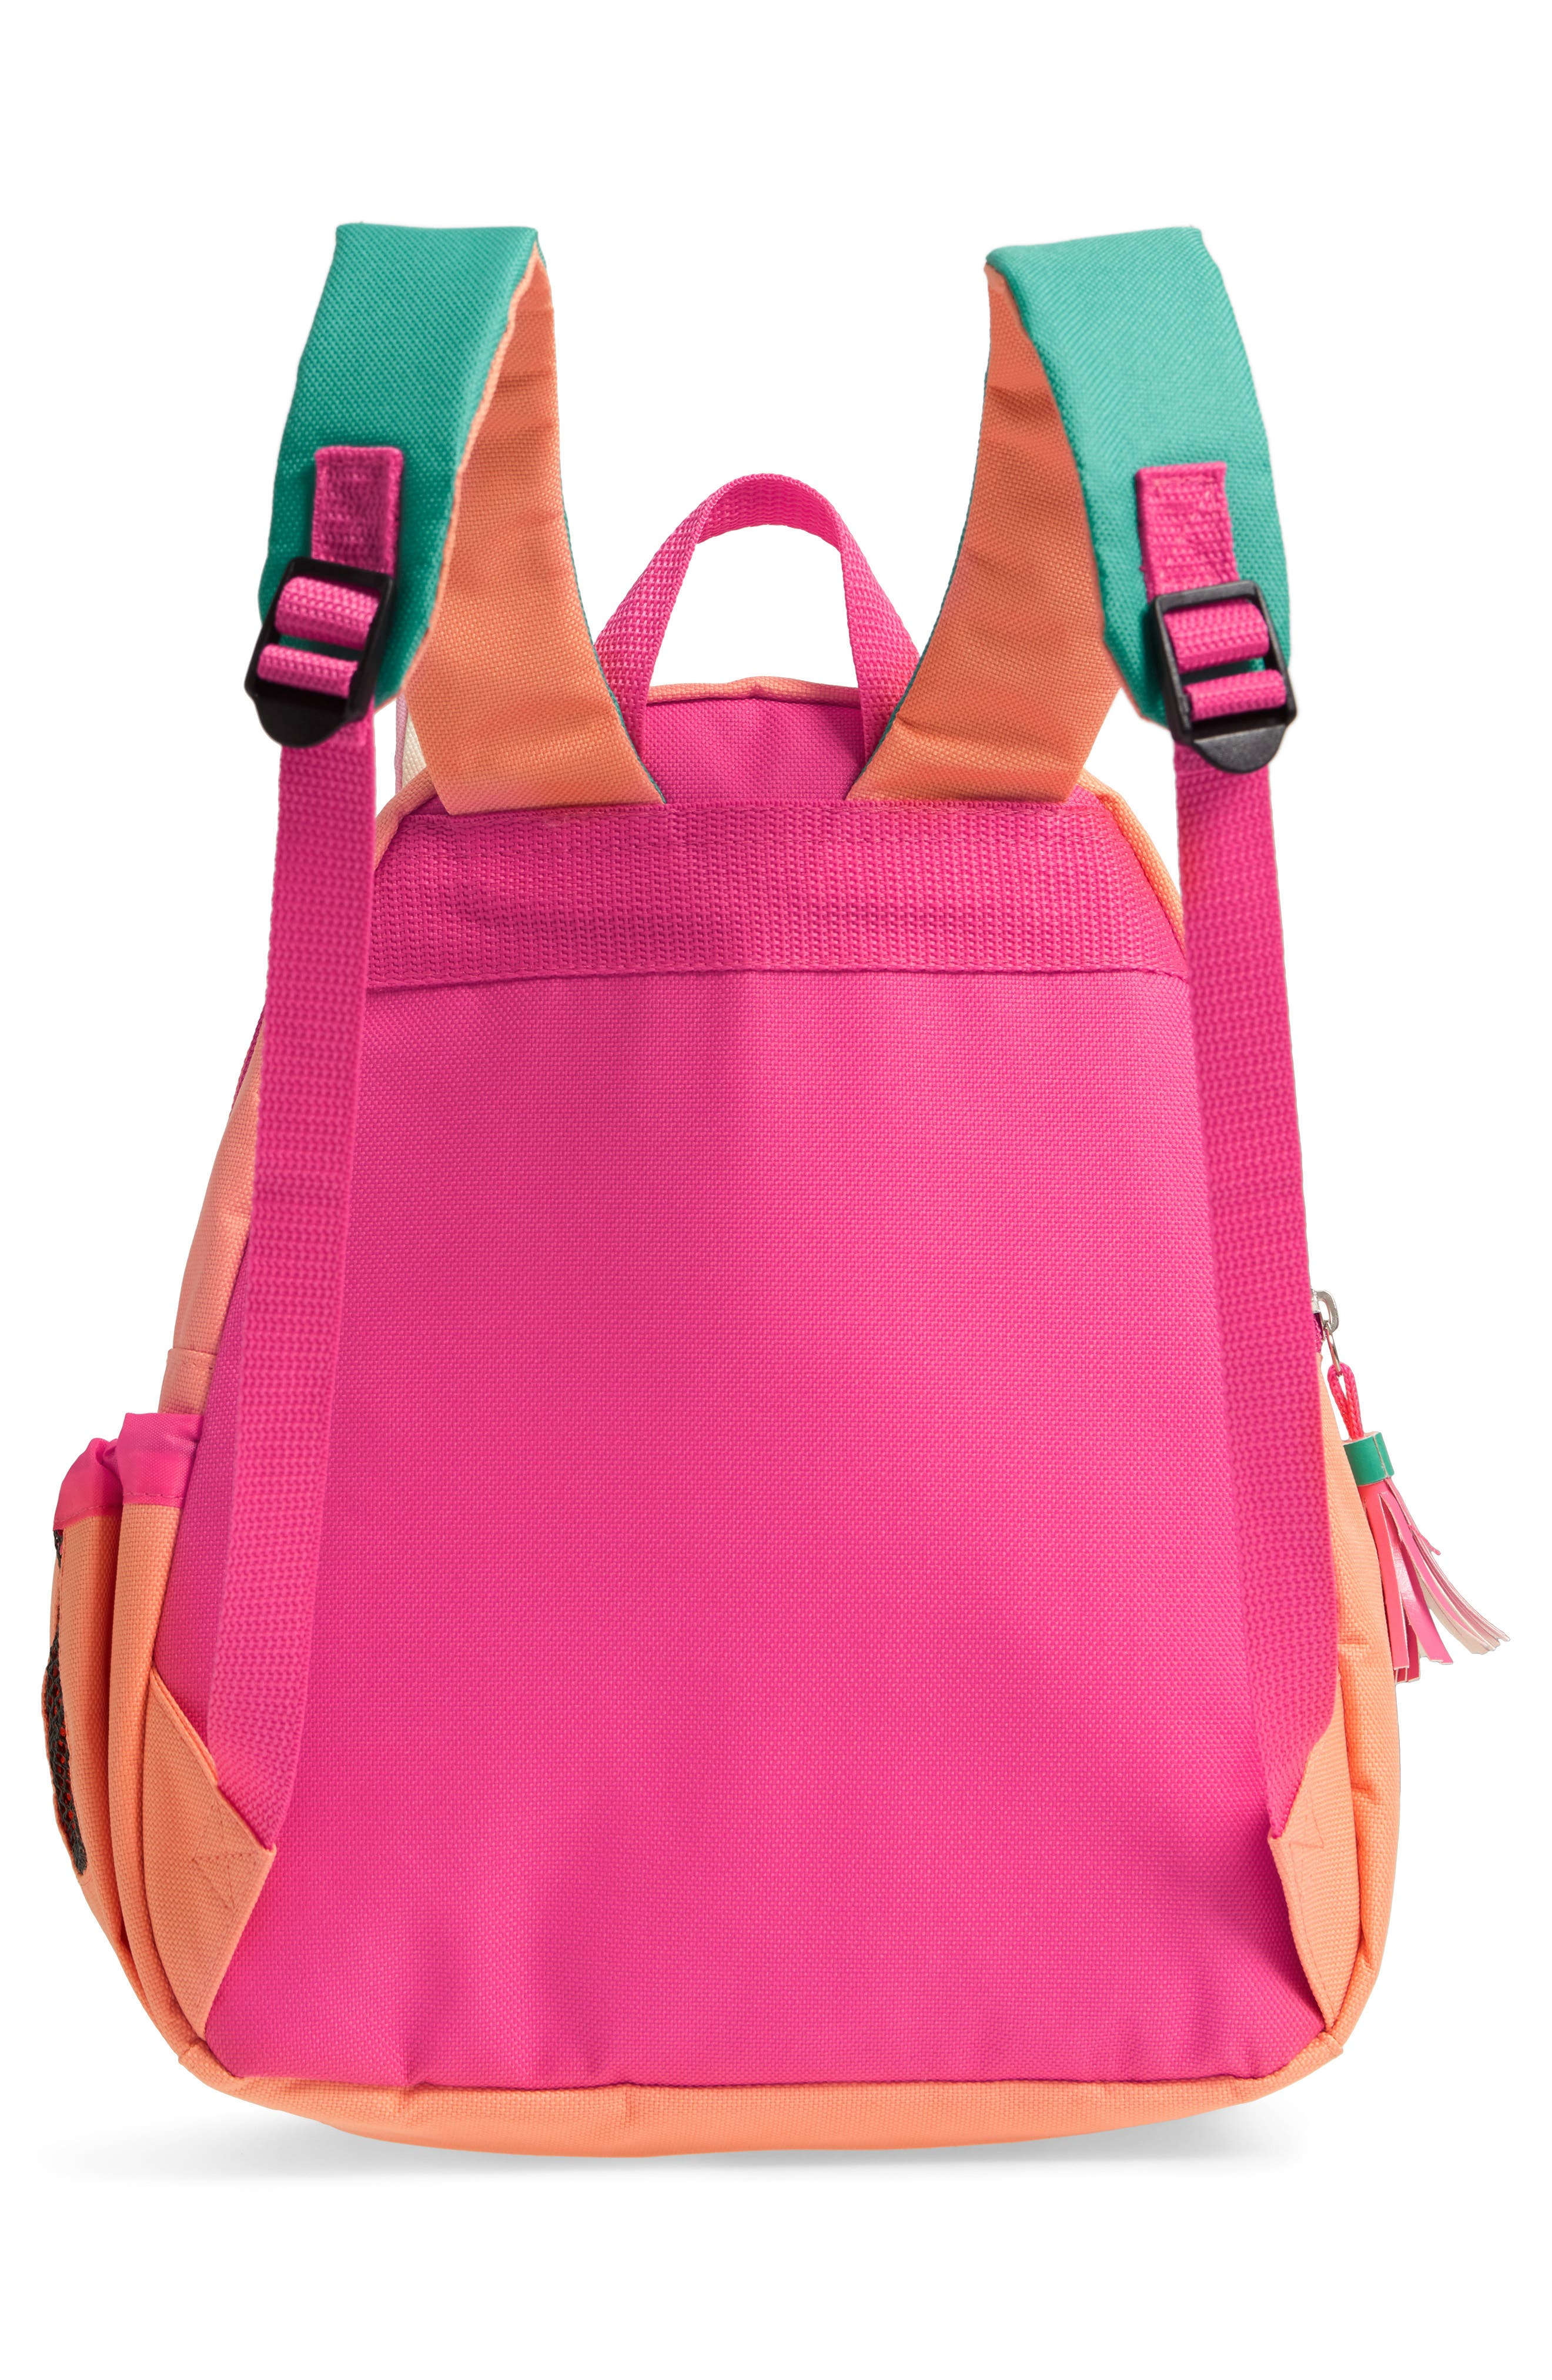 Zoo Pack Backpack,                             Alternate thumbnail 2, color,                             Pink Multi